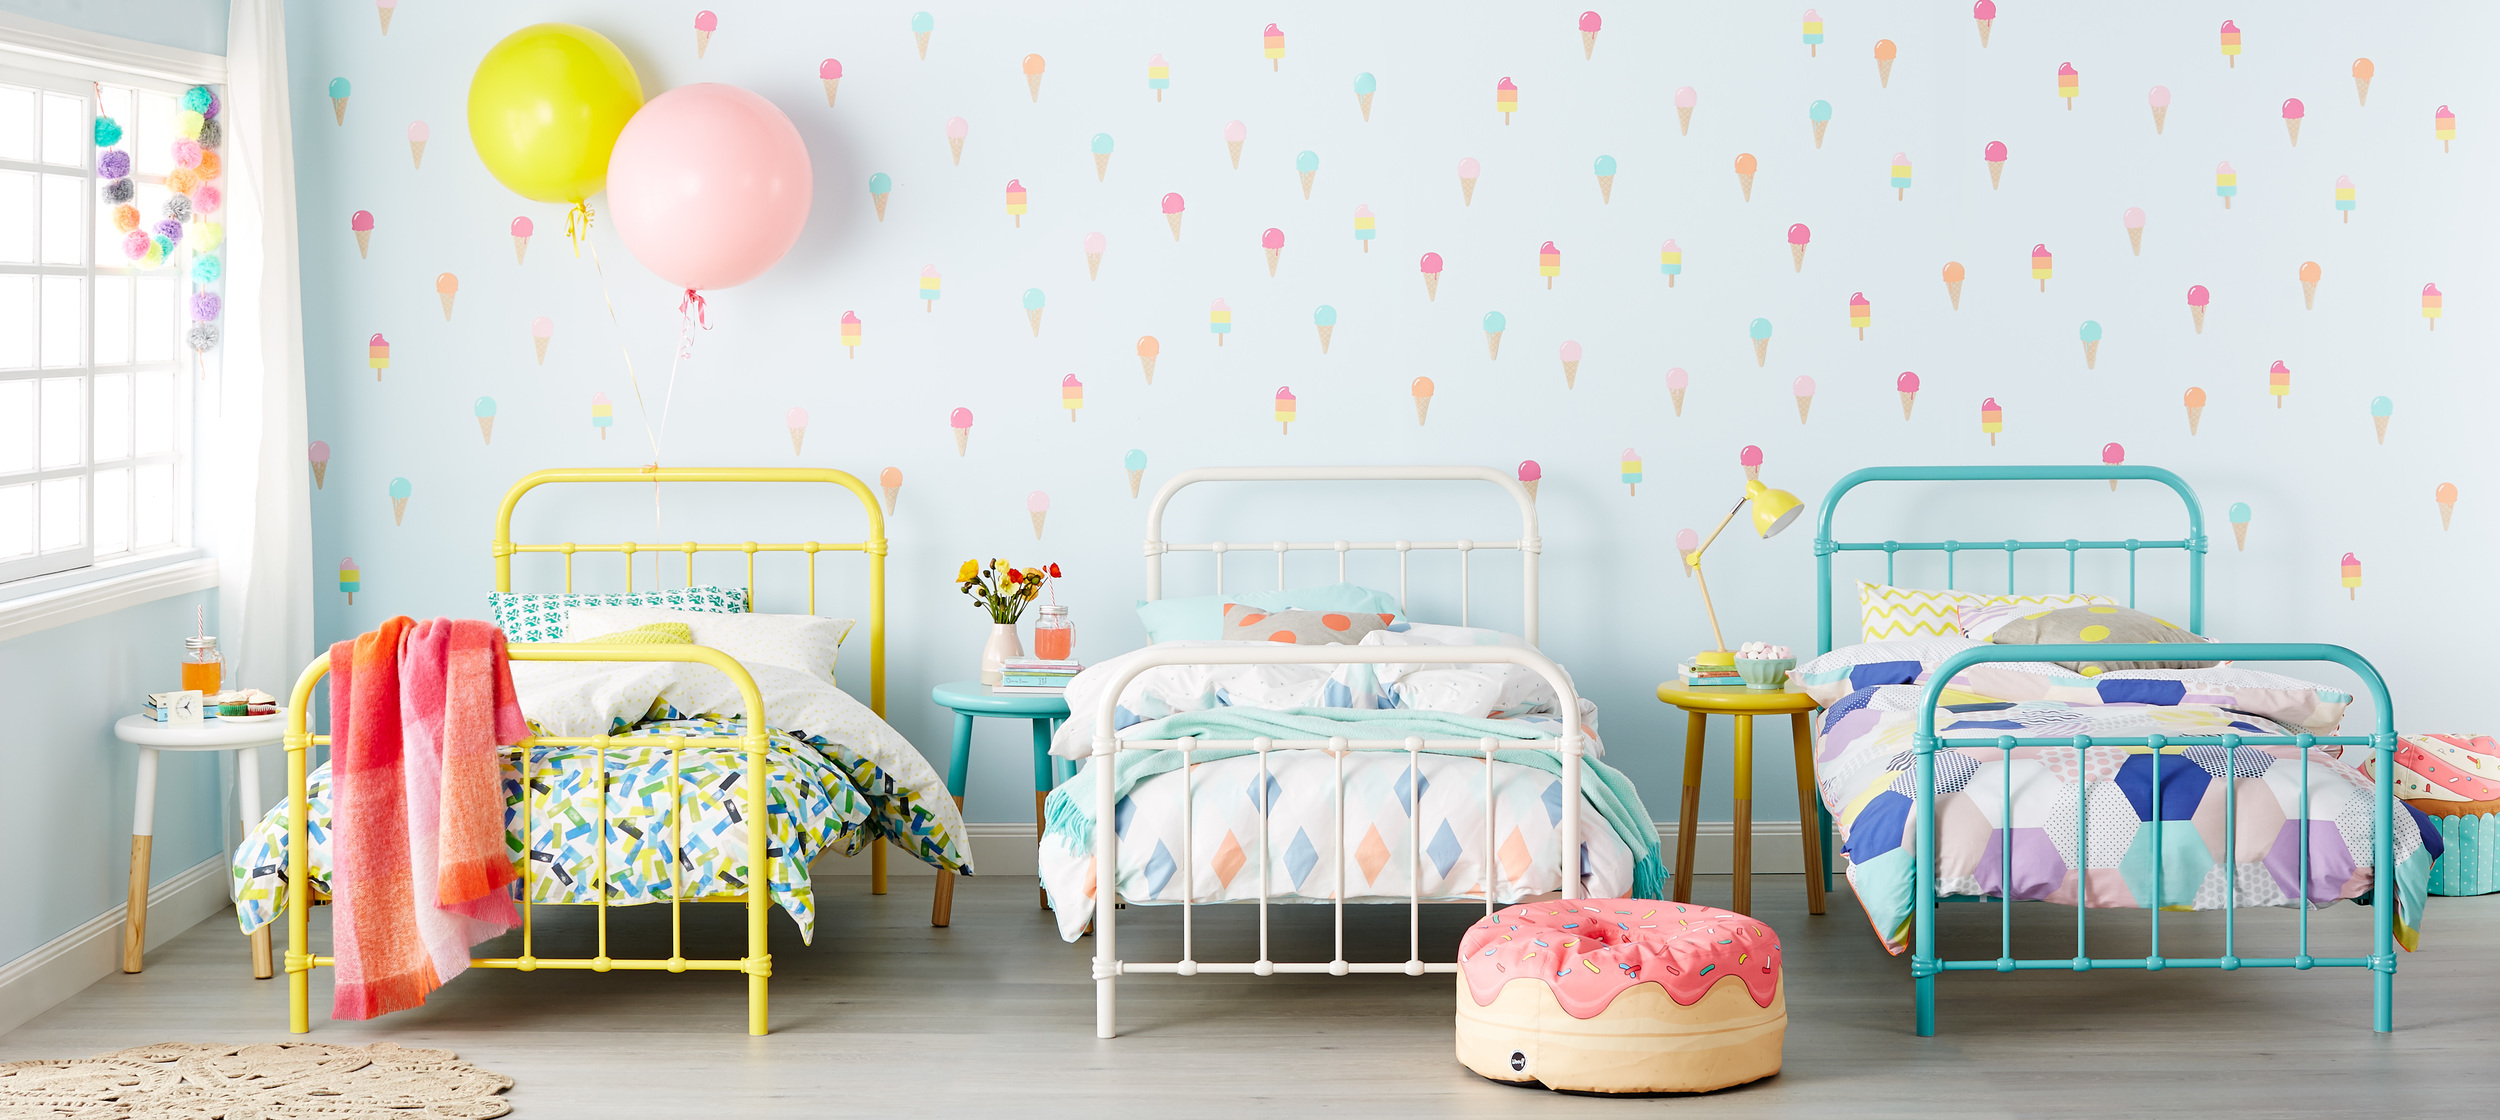 Popsicle Vintage  - Cool is making a comeback with the Popsicle range oozing playfulness and creativity. Fashioned from metal, this ageless design will transform you kids' haven into a fun-filled bright space. These beauties can also work wonders as day beds, leaving a lasting impression in your home. Brighten up your zone in yellow, teal or white. Single Bed: From RRP $399